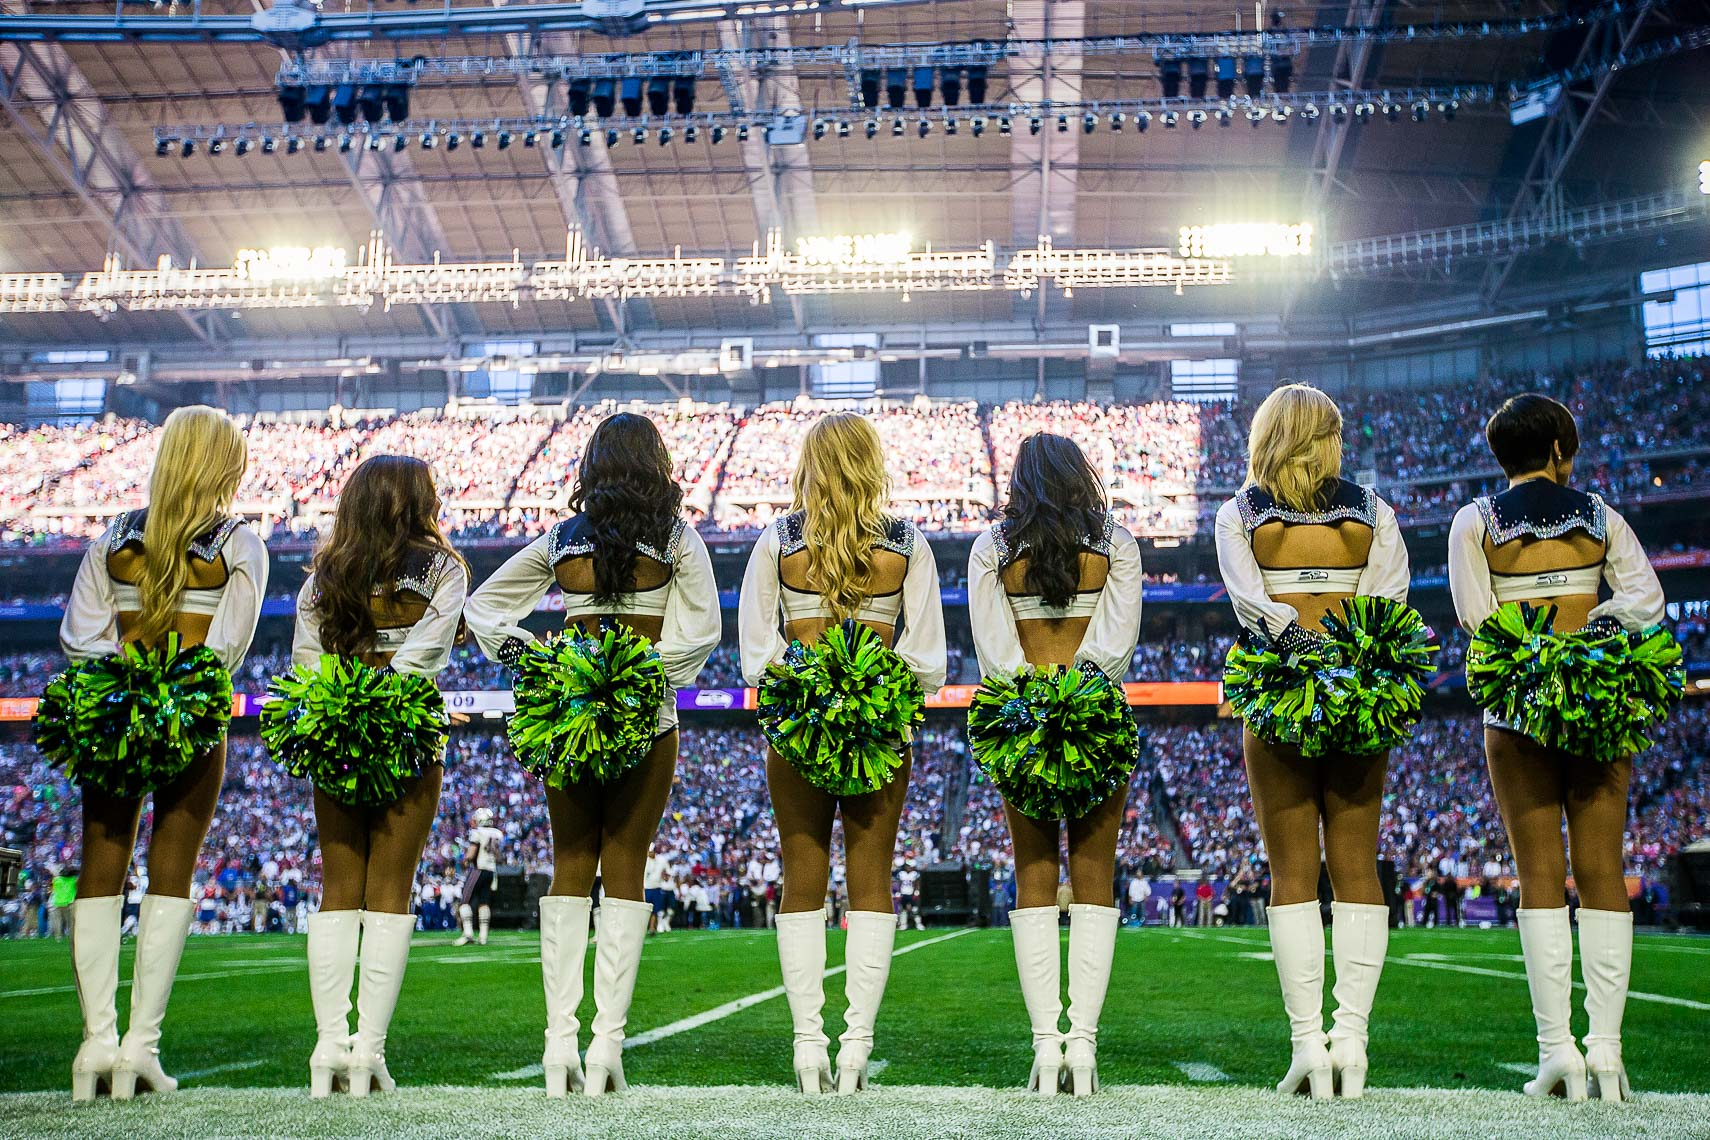 superbowl20  Best Super Bowl XLIX 49 photos between Seattle Seahawks and New England Patriots Cheerleaders